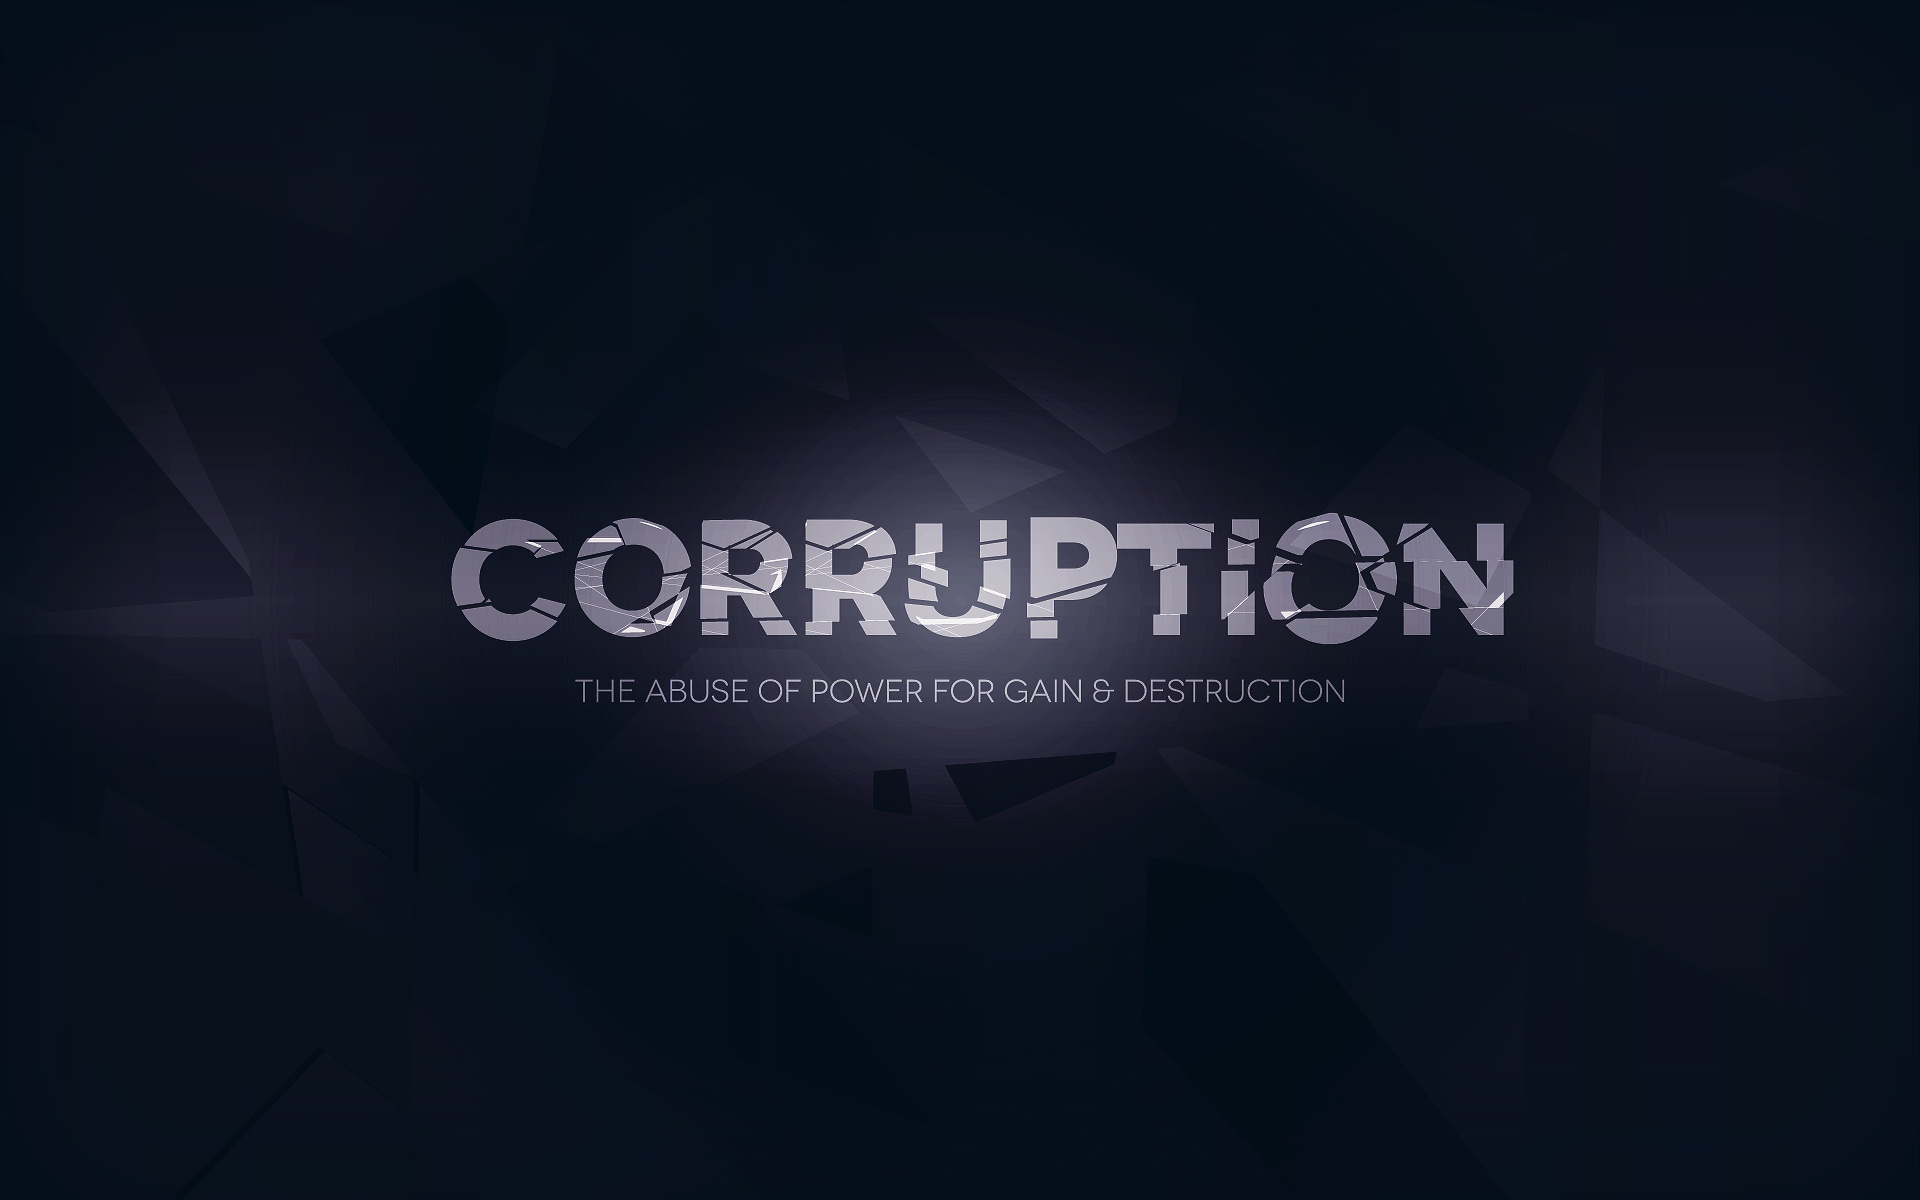 The path to corruption the picture